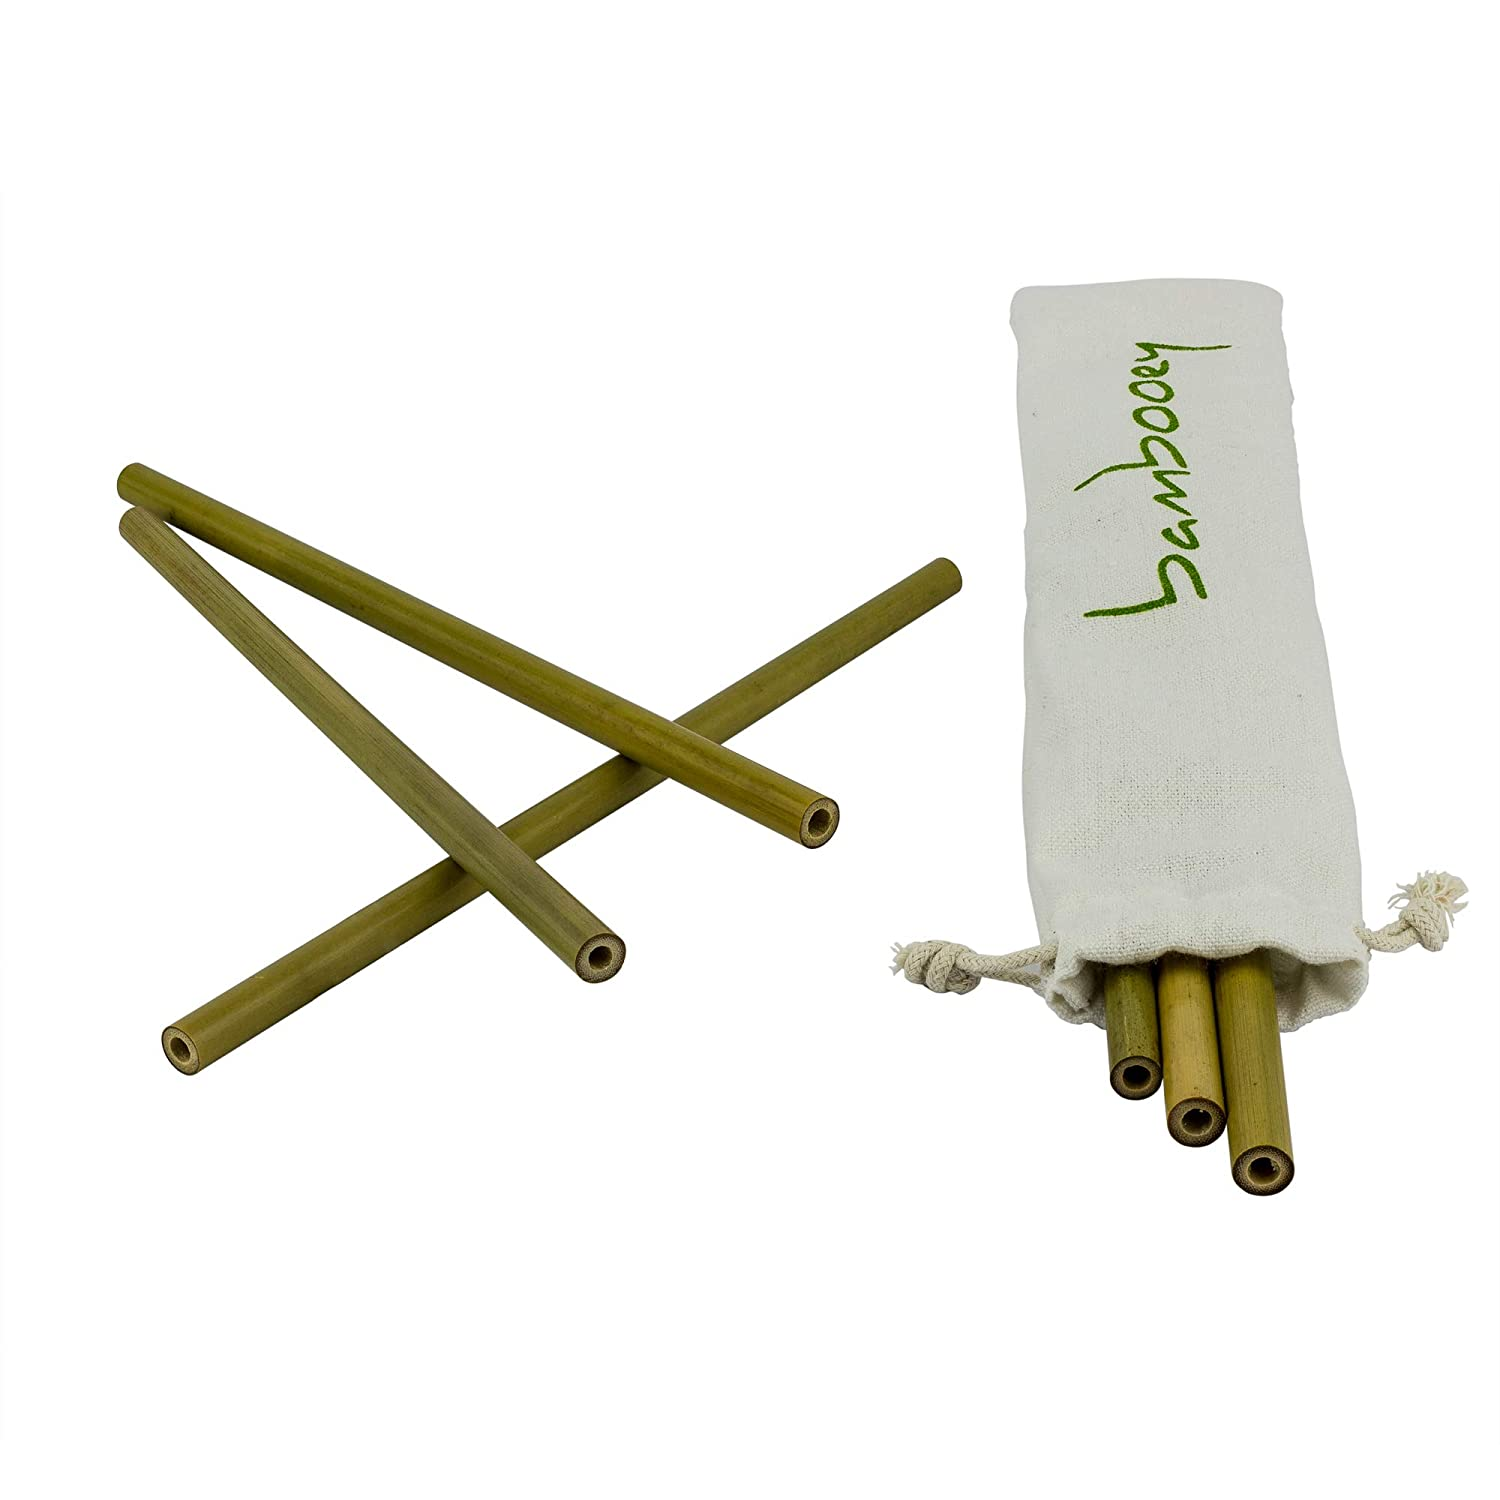 Plastic Drinking Straw Alternative Pack of 6 Reusable and 100/% Biodegradable Bamboo Drinking Straws by bambooey Straw Cleaning Brush Included Environmentally Friendly Drinking Straws